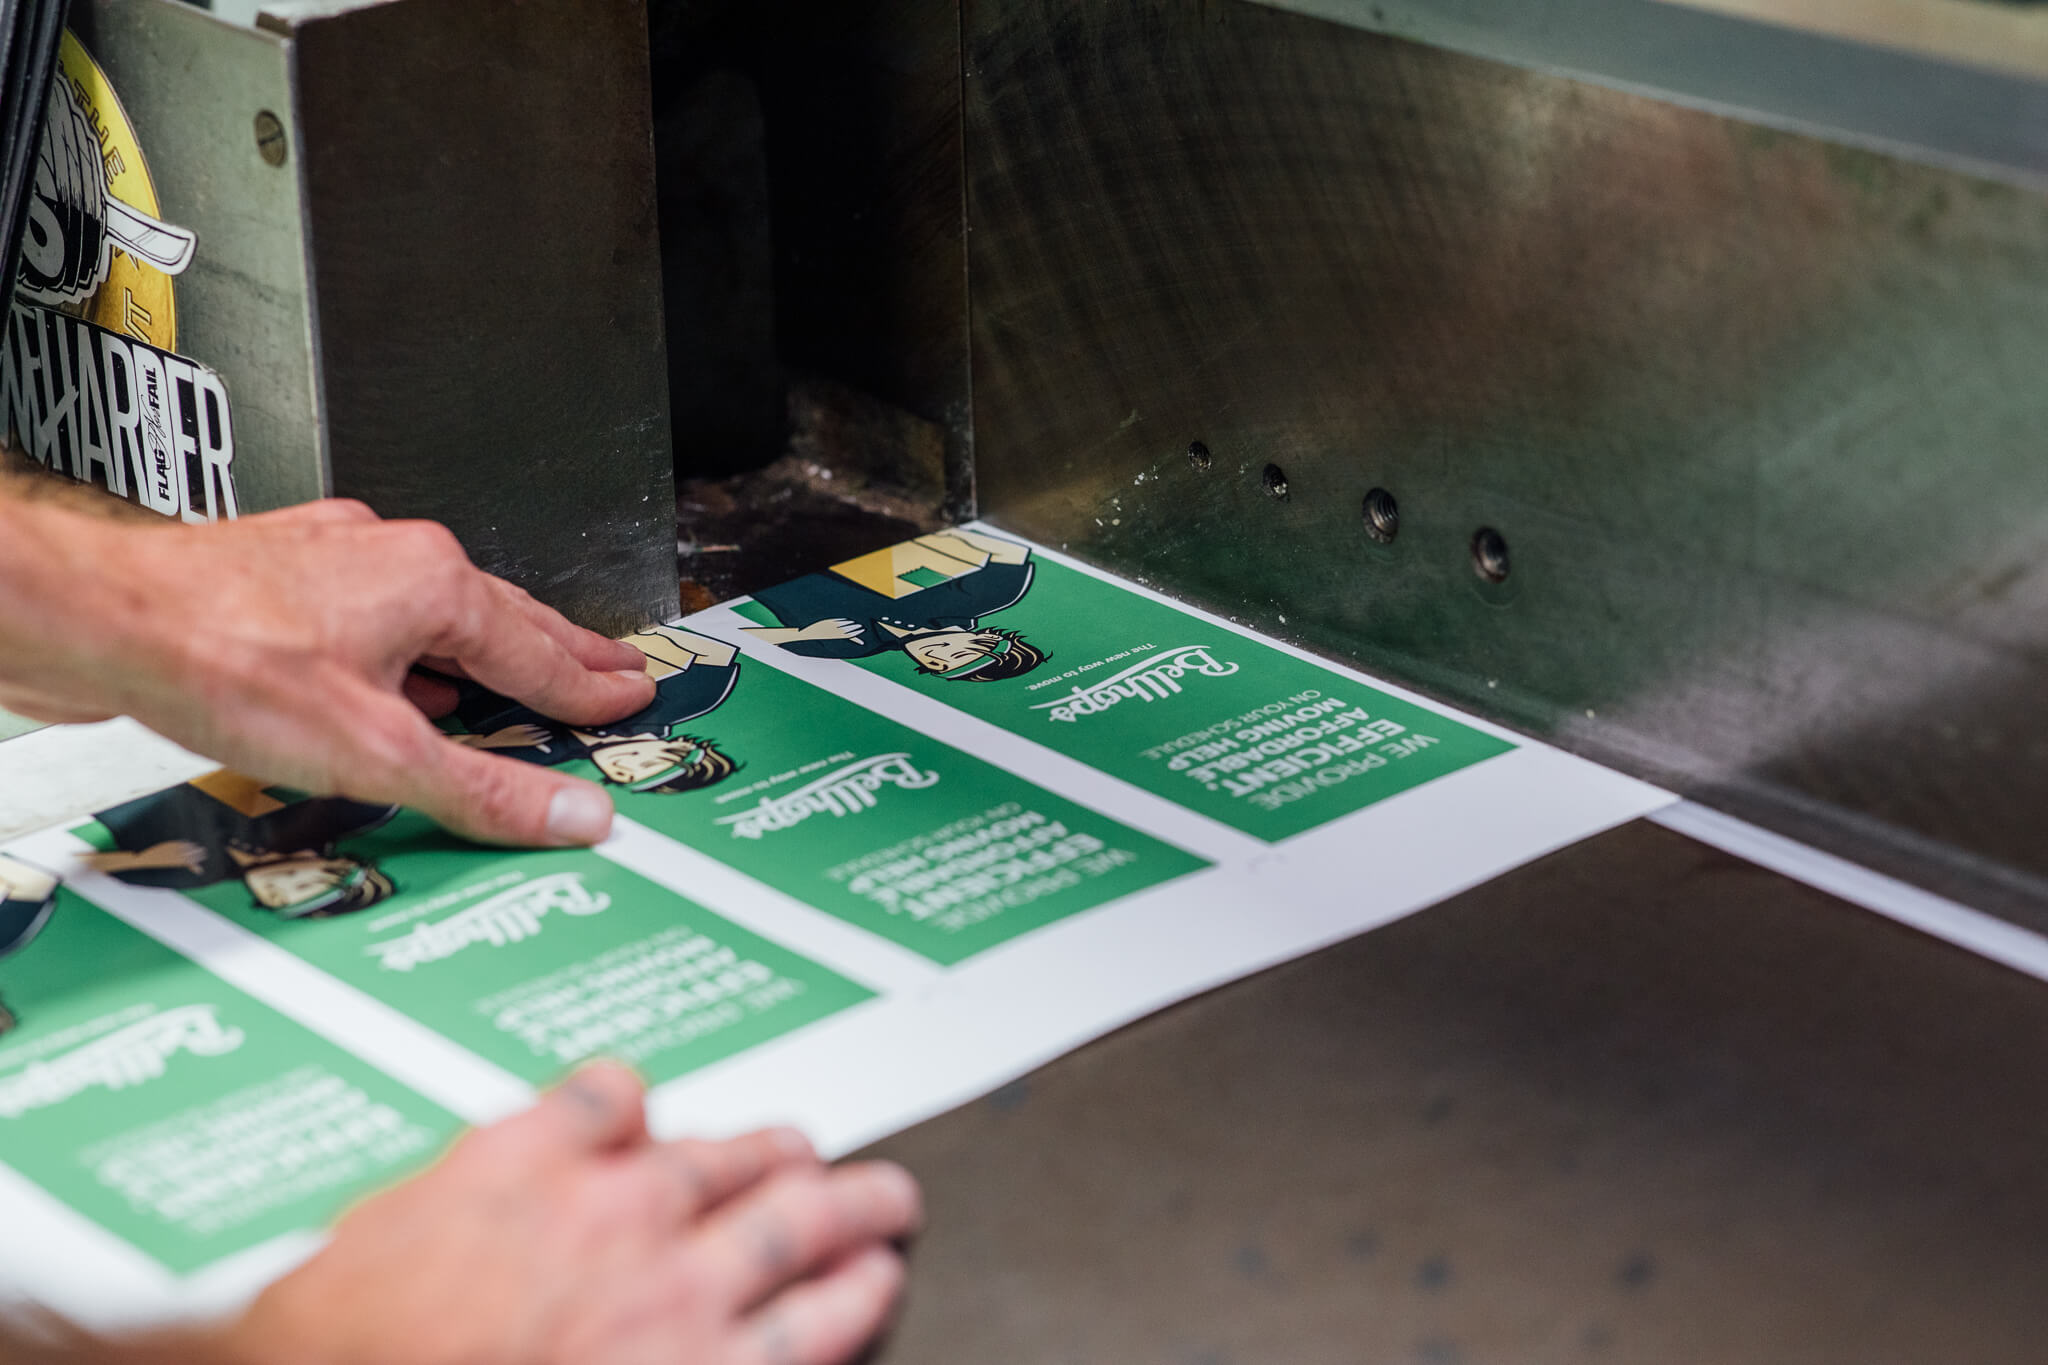 Bellhops vinyl decals getting cut by a guillotine